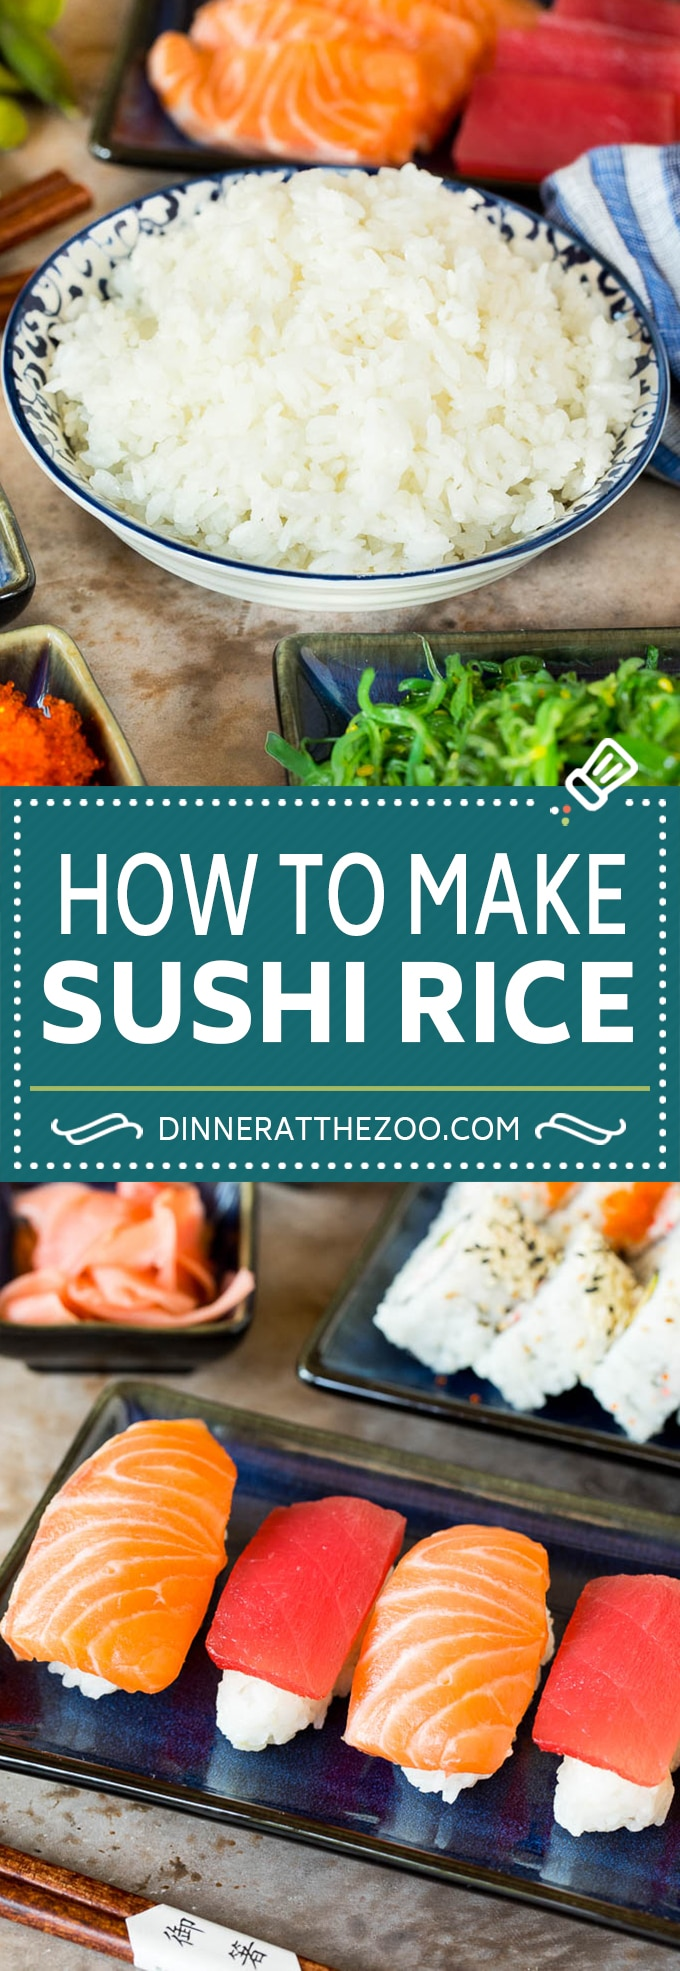 This sushi rice is a simple blend of rice, sugar, vinegar and salt that makes the perfect foundation for any type of sushi.